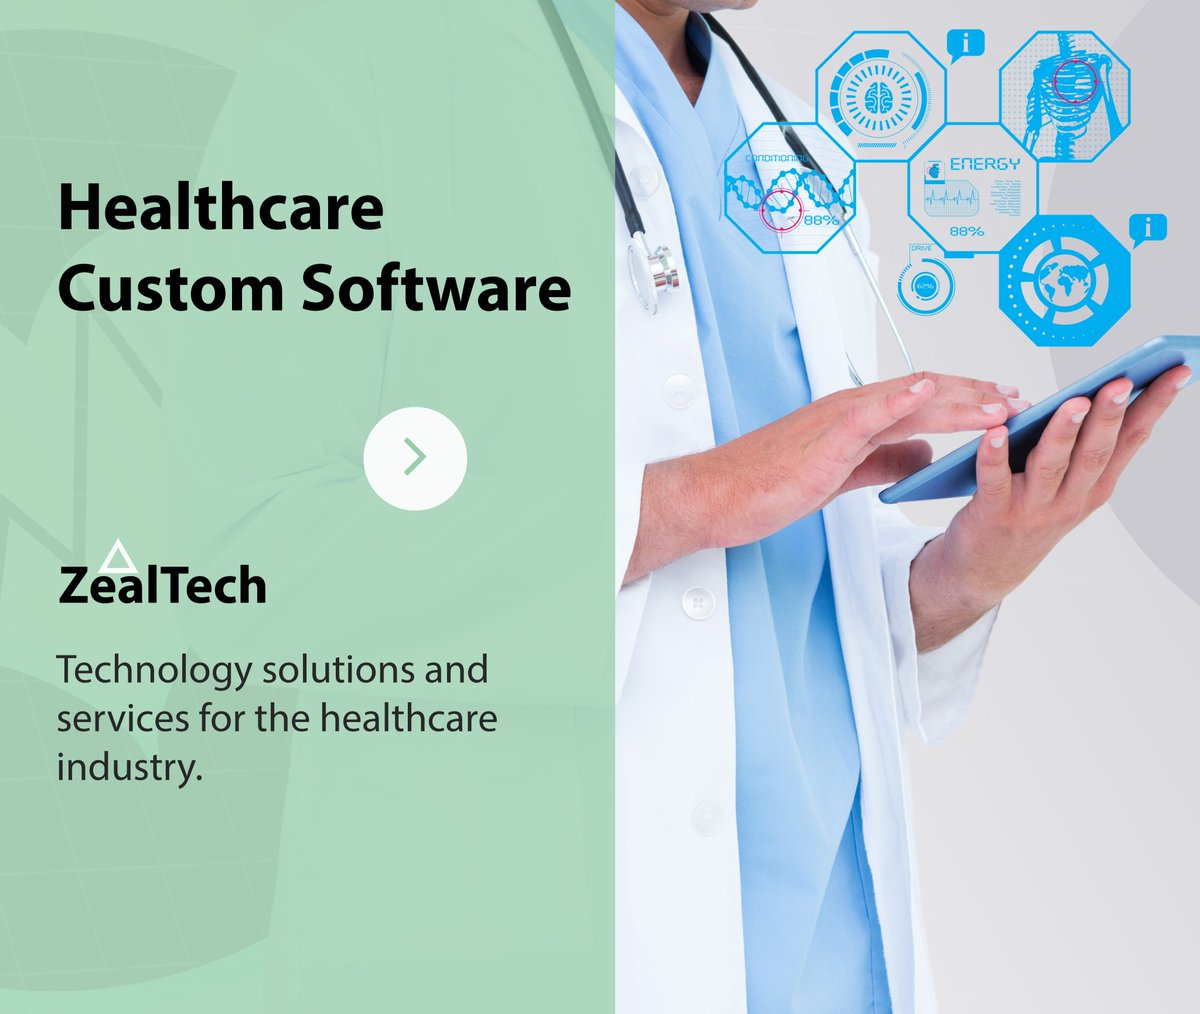 Healthcare Software Development Technology solutions and services for the healthcare industry. https://zealtech.io/  - Engagement of 3rd party security auditors (OWASP, TrueSec) - Consultation provided by MedTech - HIPAA / GDRP compliant - Blockchain development - Big Data pic.twitter.com/jmoXEzG6L1